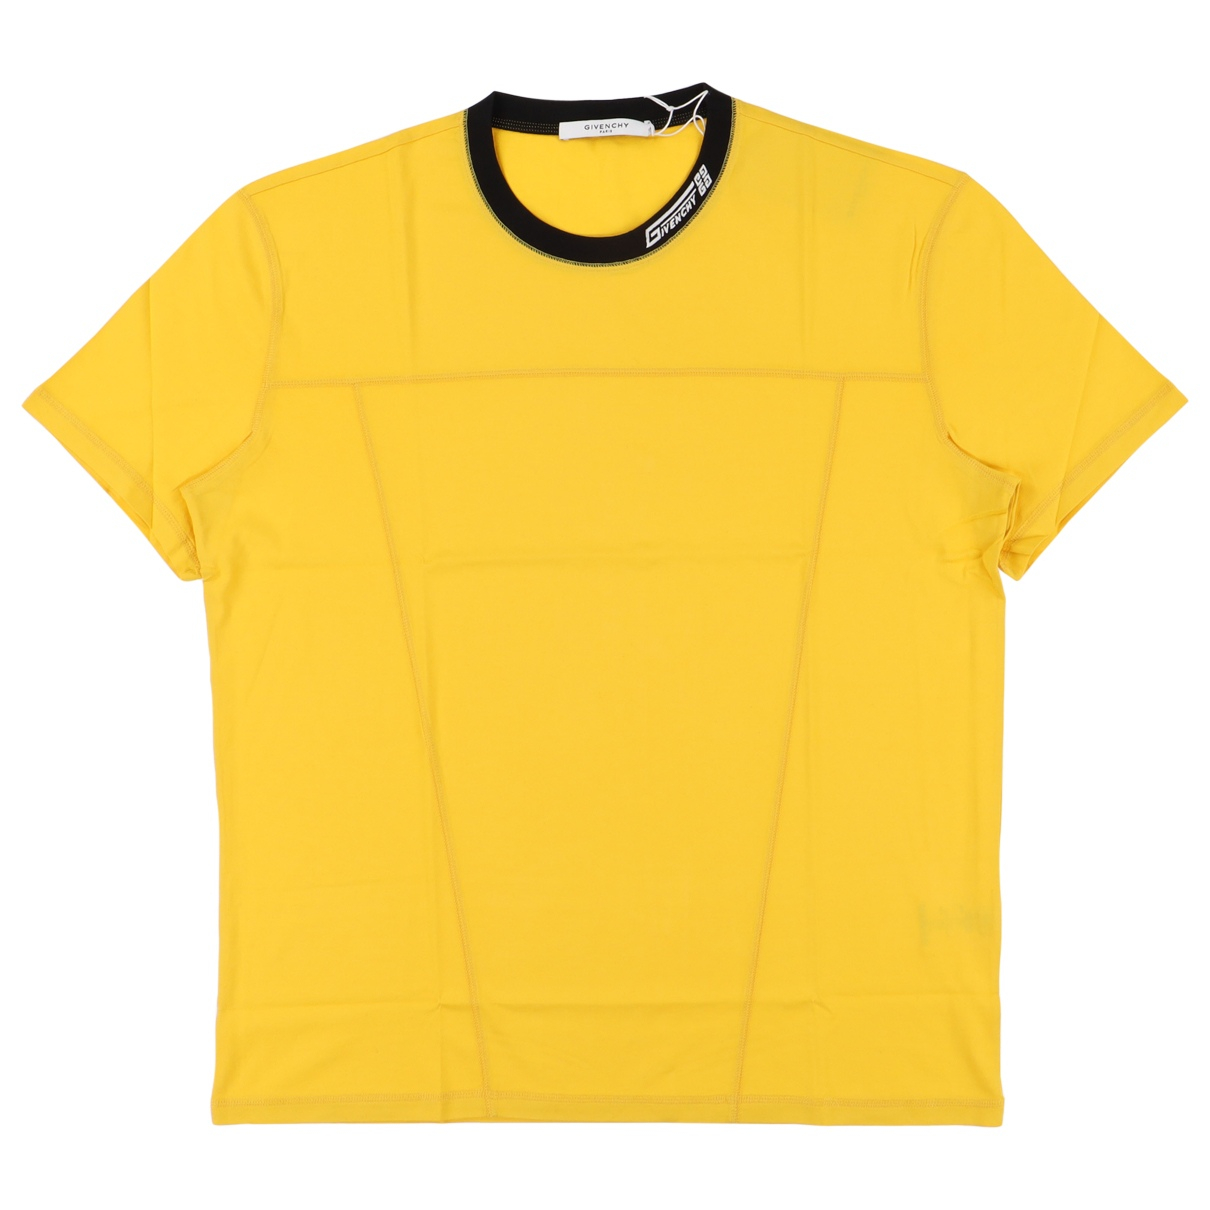 Givenchy \N Yellow Cotton T-shirts for Men M International